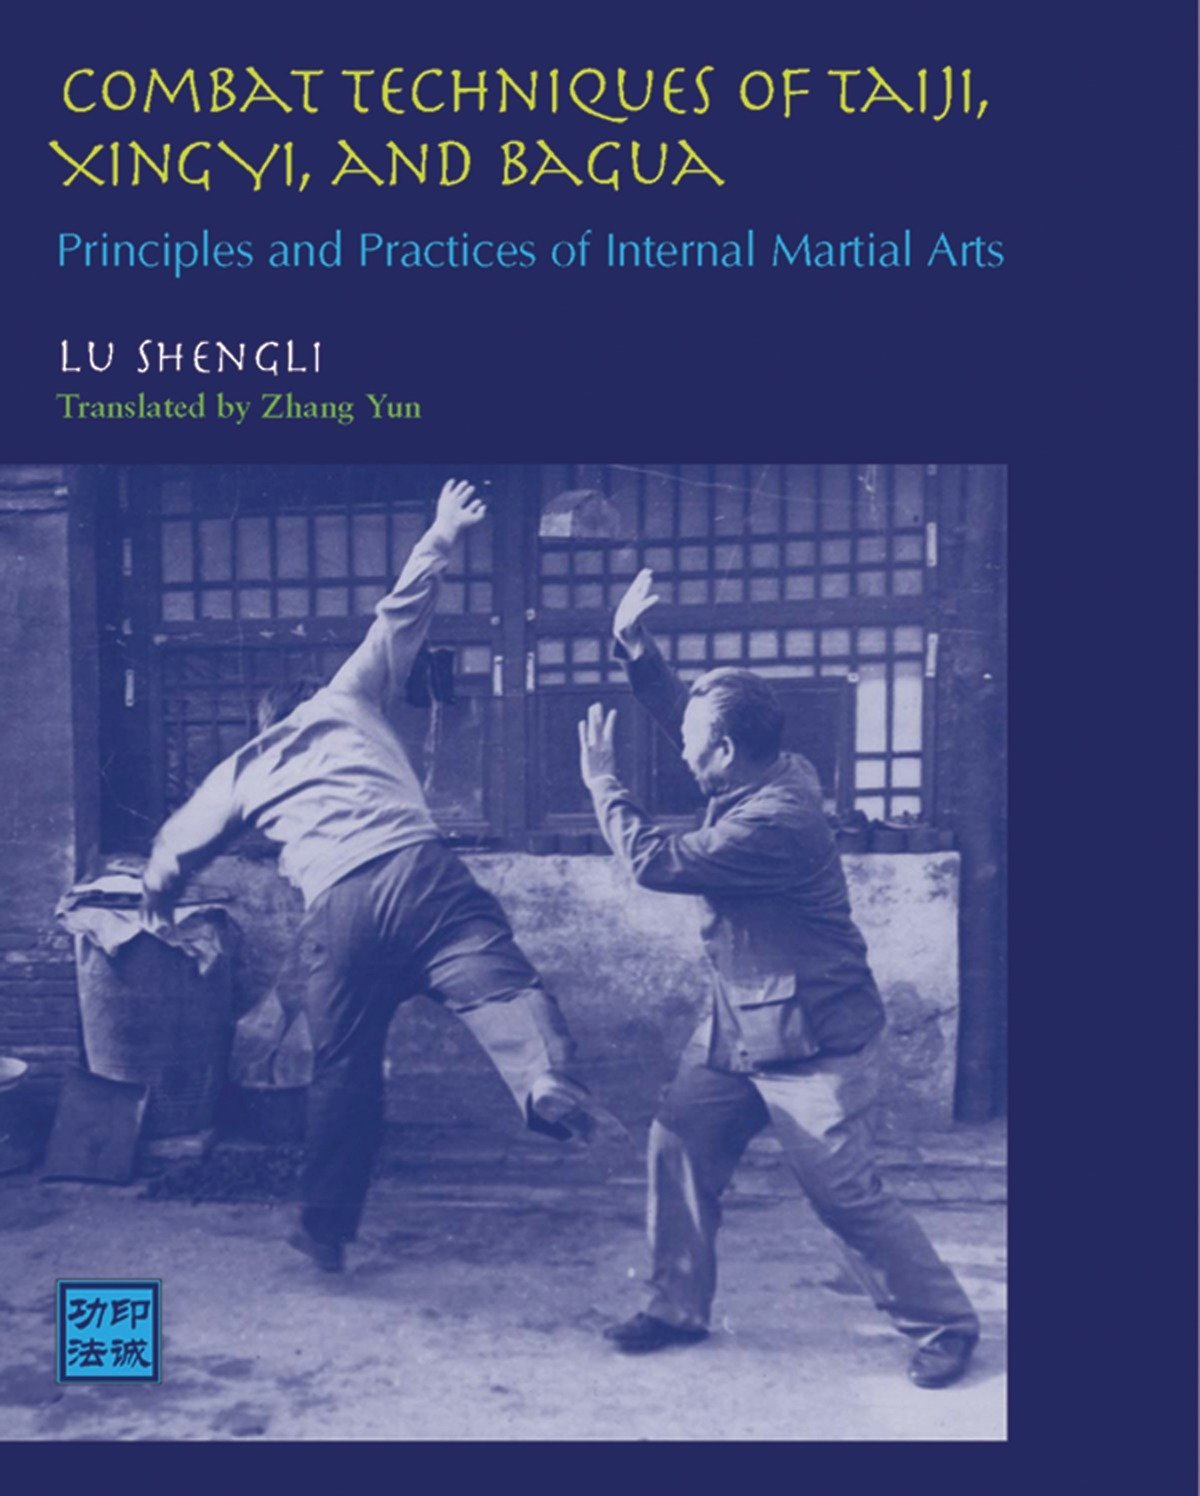 Combat Techniques of Taiji, Xingyi, and Bagua: Principles and Practices of  Internal Martial Arts: Lu Shengli, Zhang Yun: 9781583941454: Amazon.com:  Books